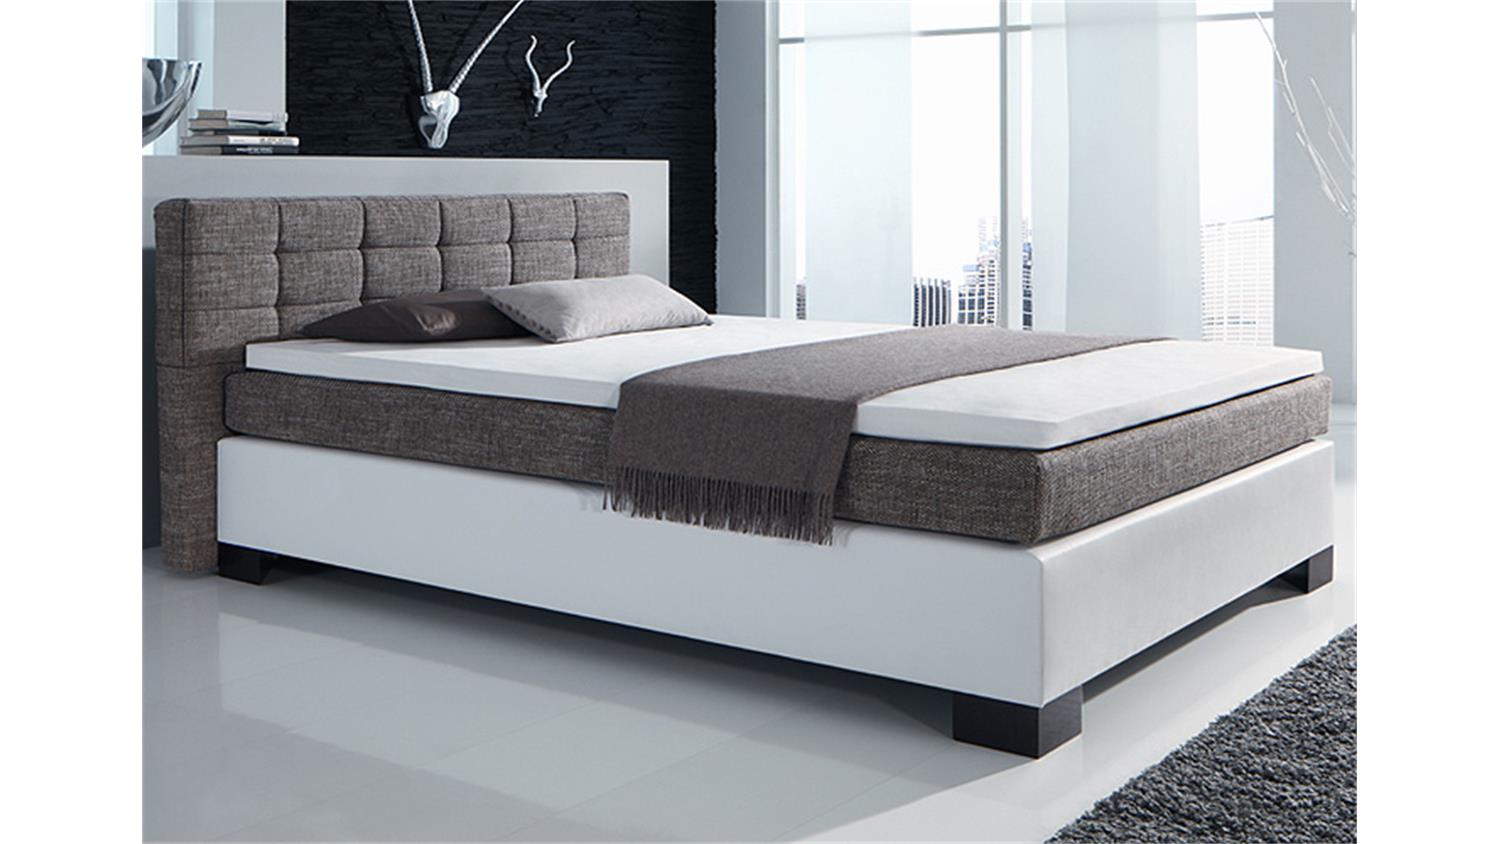 Boxspring Lattenrost Bett 130x200 Boxspring Matratze 140x200 Box Spring Bed